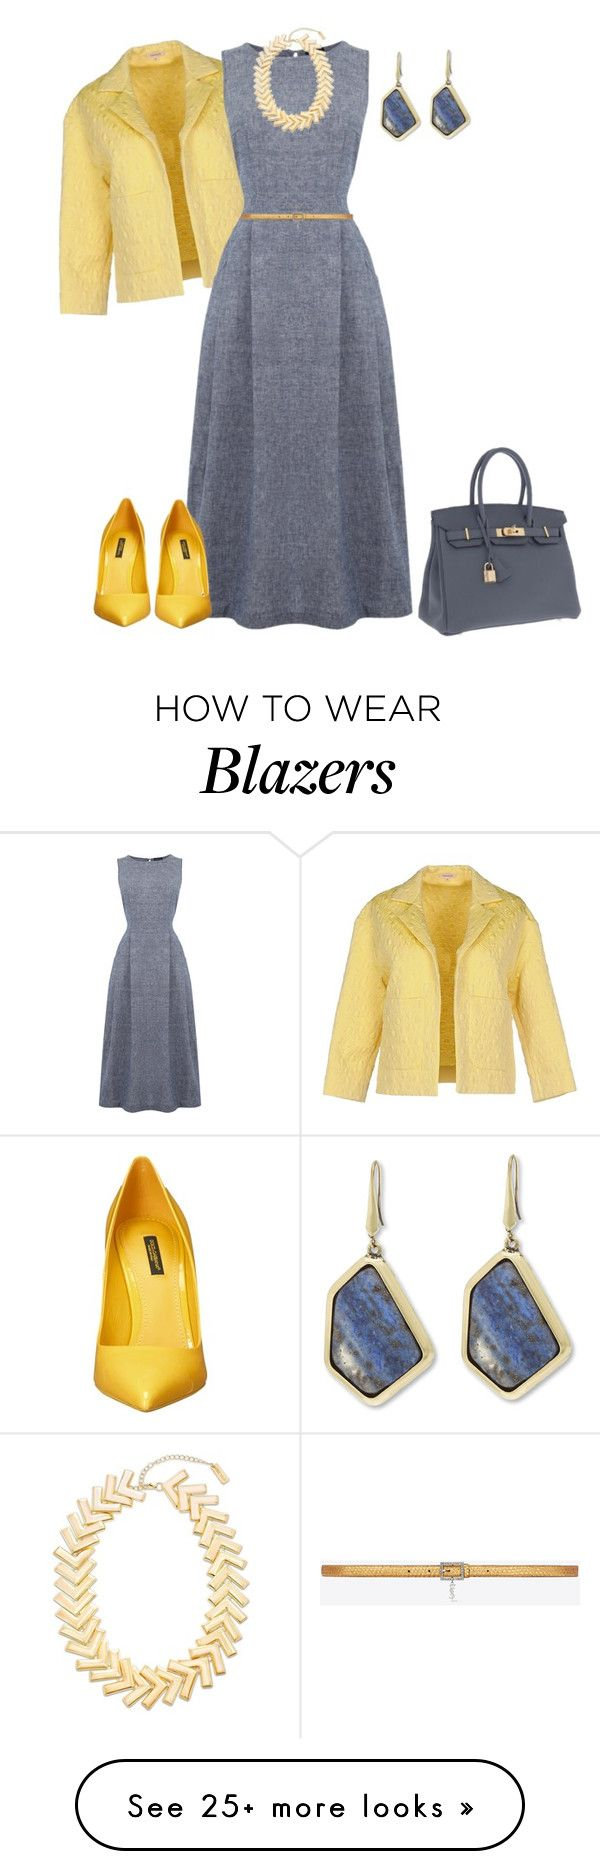 """outfit 4054"" by natalyag on Polyvore featuring P.A.R.O.S.H., Hermès, Warehouse, Steve Madden, Yves Saint Laurent and Dolce&Gabbana"